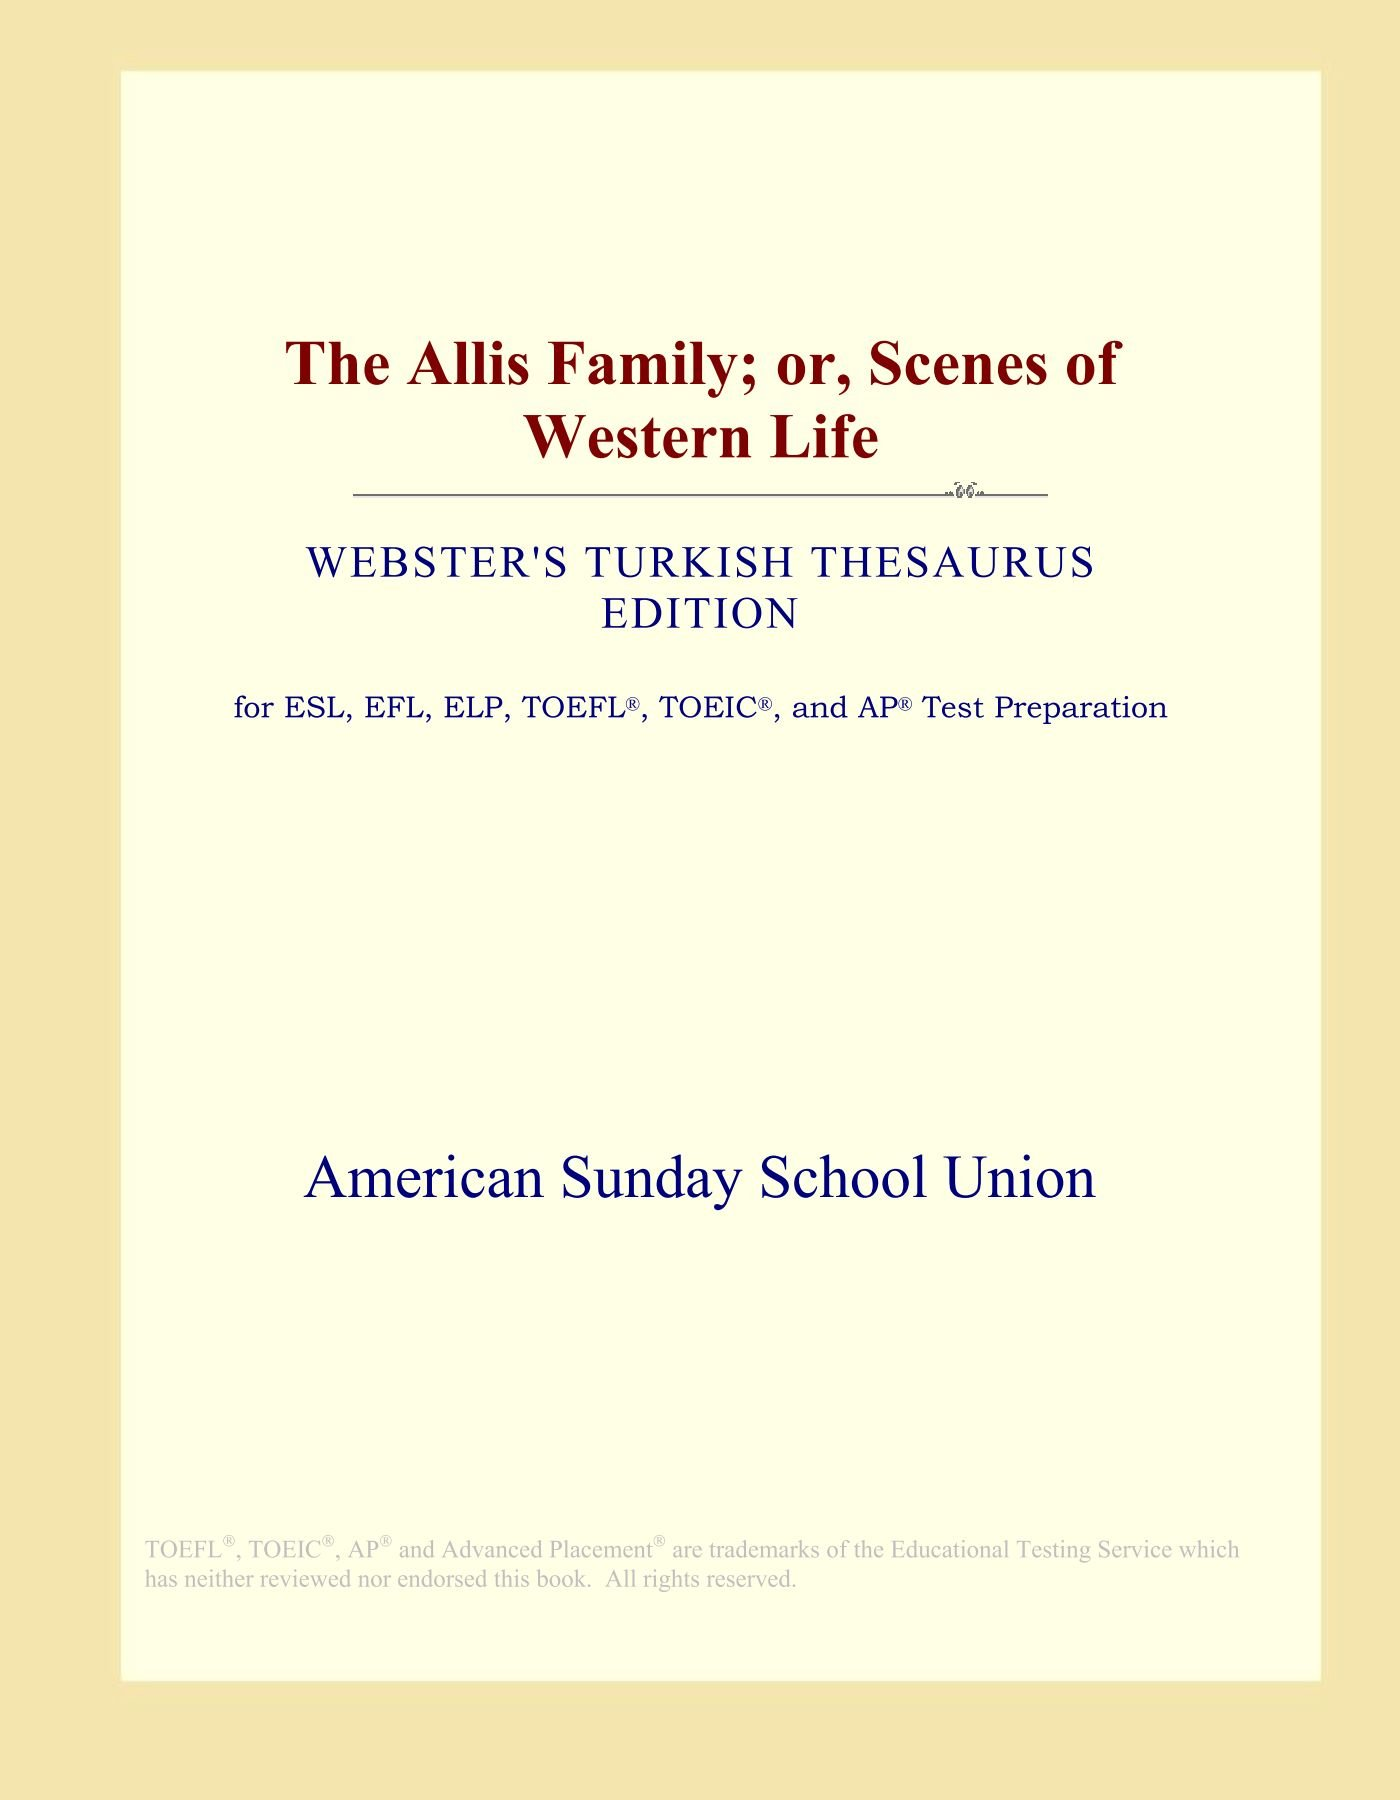 The Allis Family; or, Scenes of Western Life (Webster's Turkish Thesaurus Edition) pdf